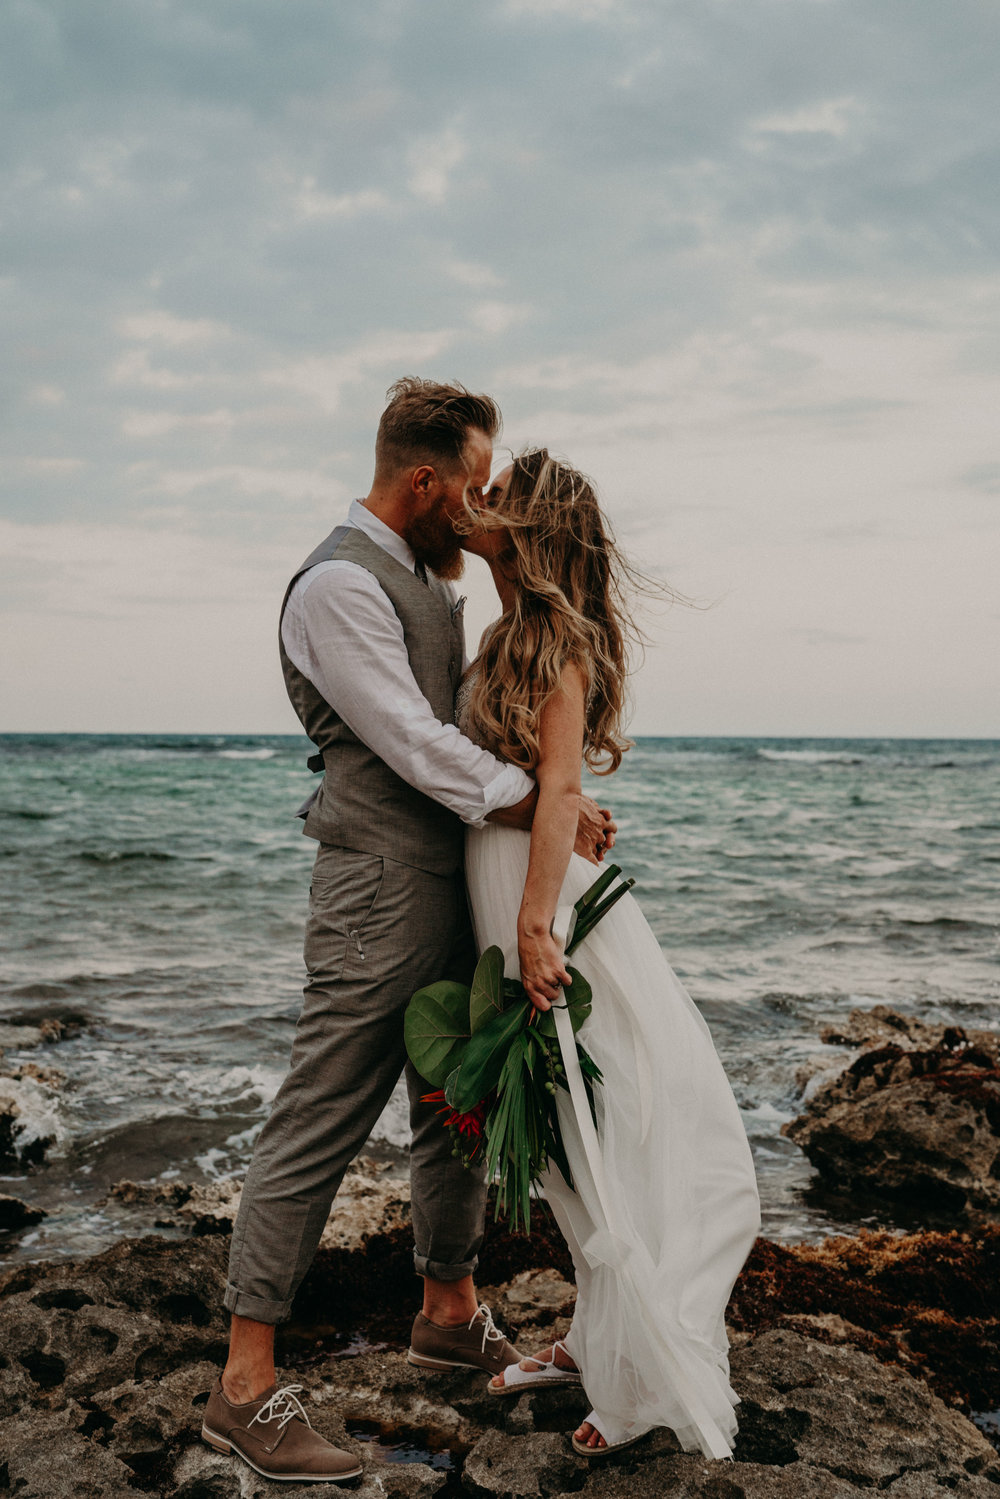 """. . . - """"THERE AREN'T WORDS, ONLY DEEP FEELINGS OF JOY AND GRATITUDE FOR RANDI AND HOW SHE PERFECTLY CAPTURED OUR WEDDING."""" / natalie + patrick"""